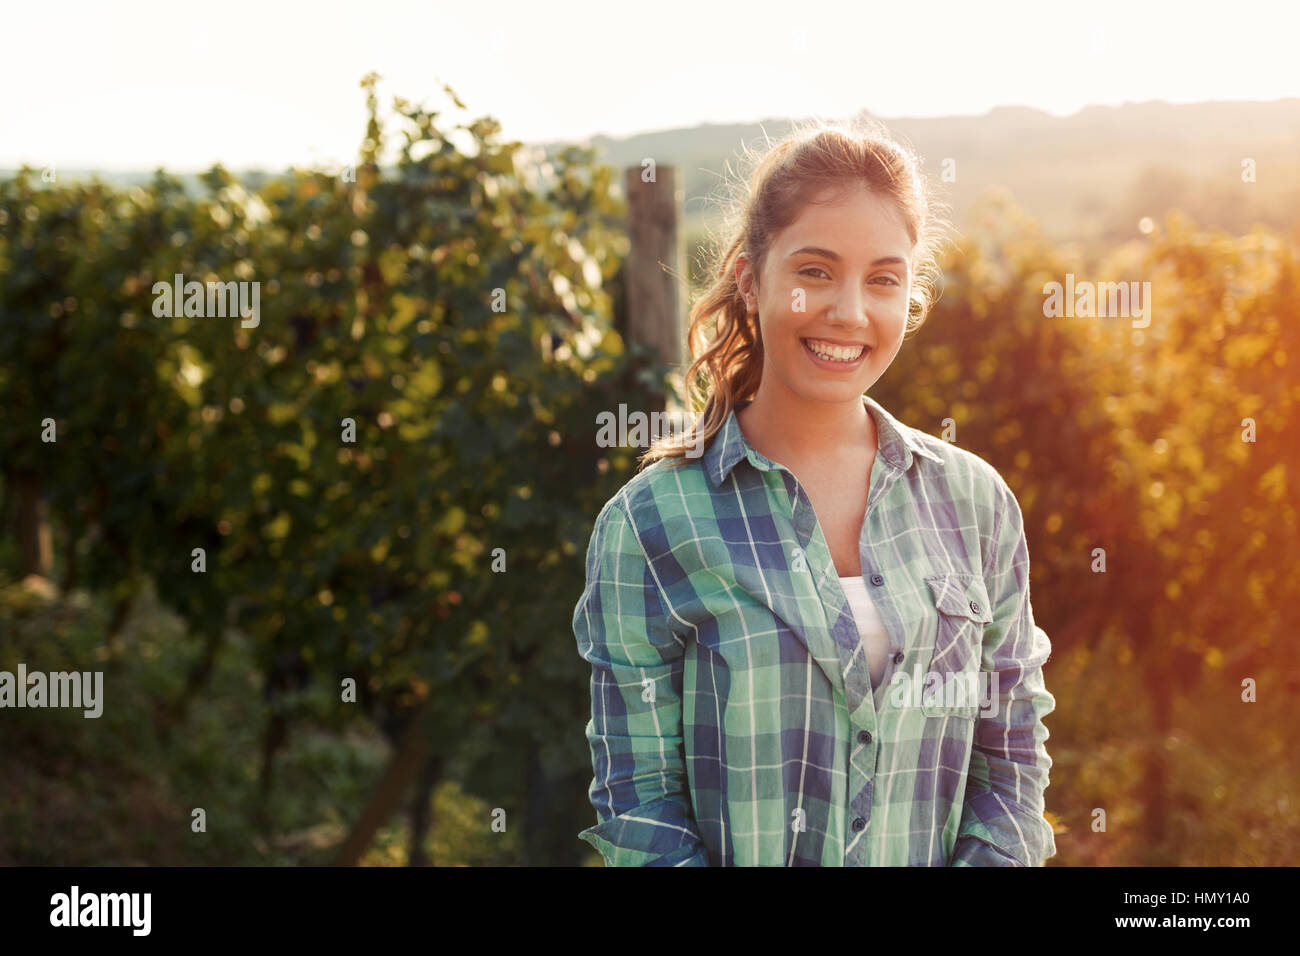 Happy woman in vineyard checking grapes before harvesting - Stock Image